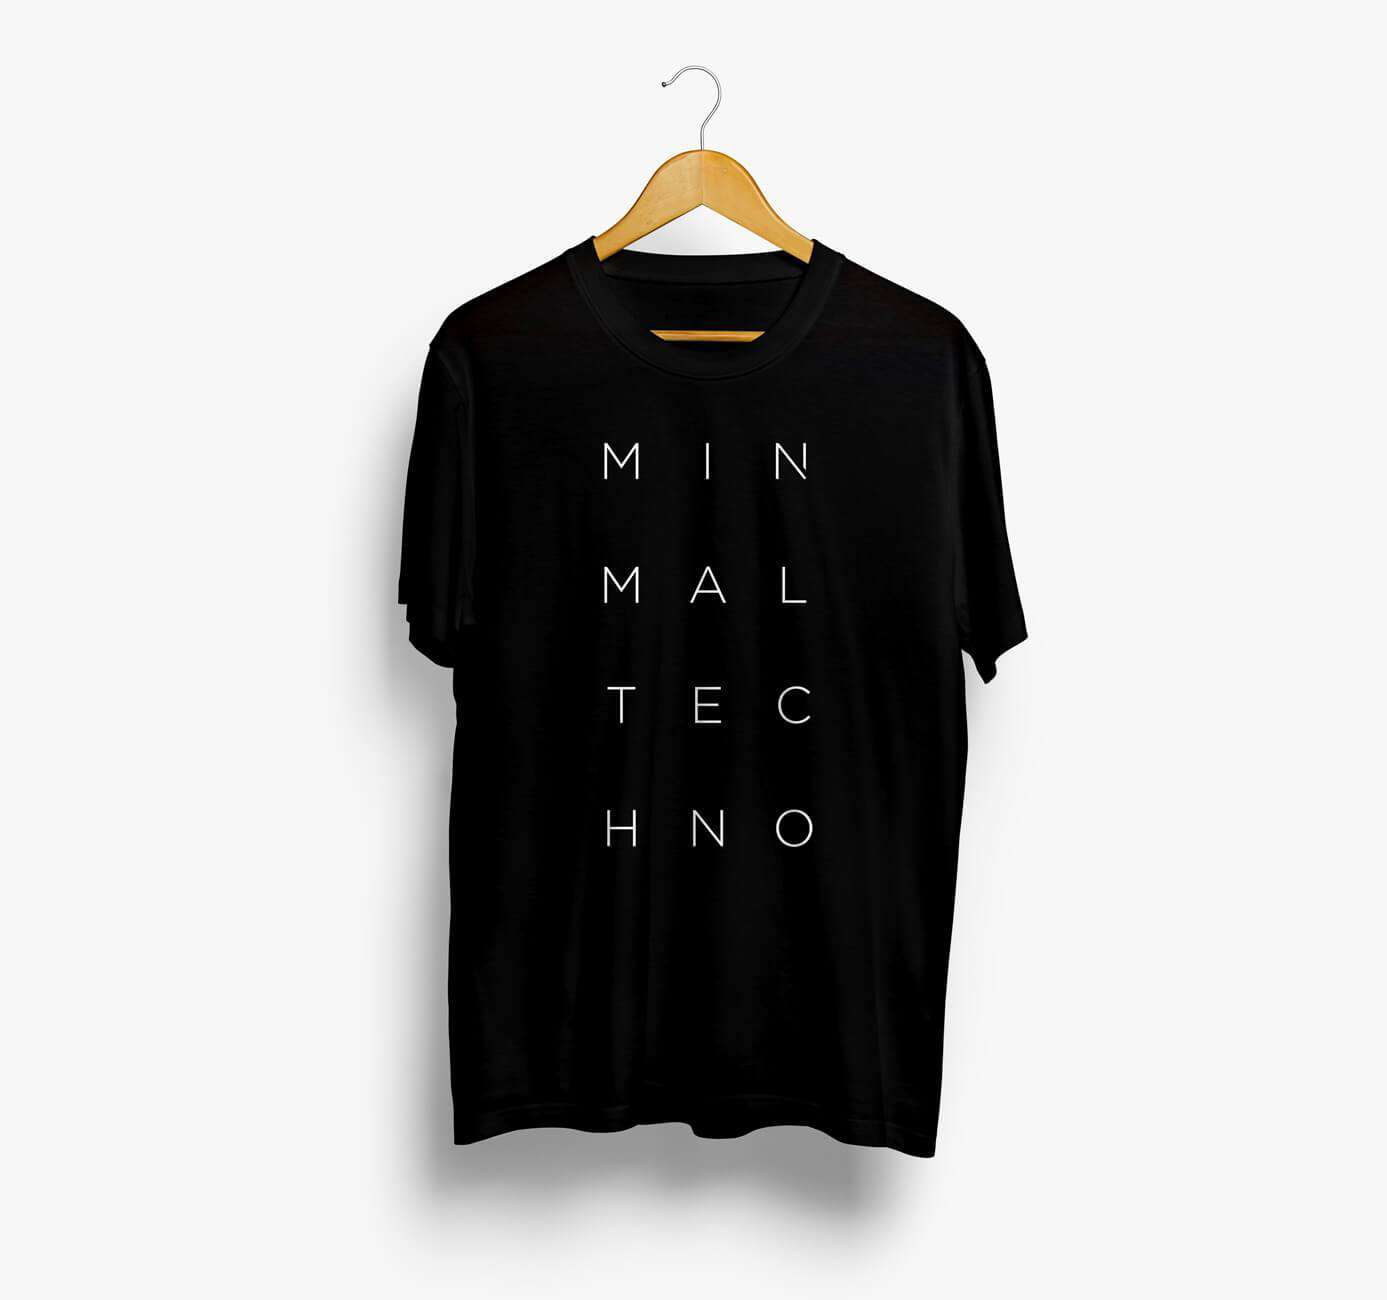 Minimal Techno T-Shirt